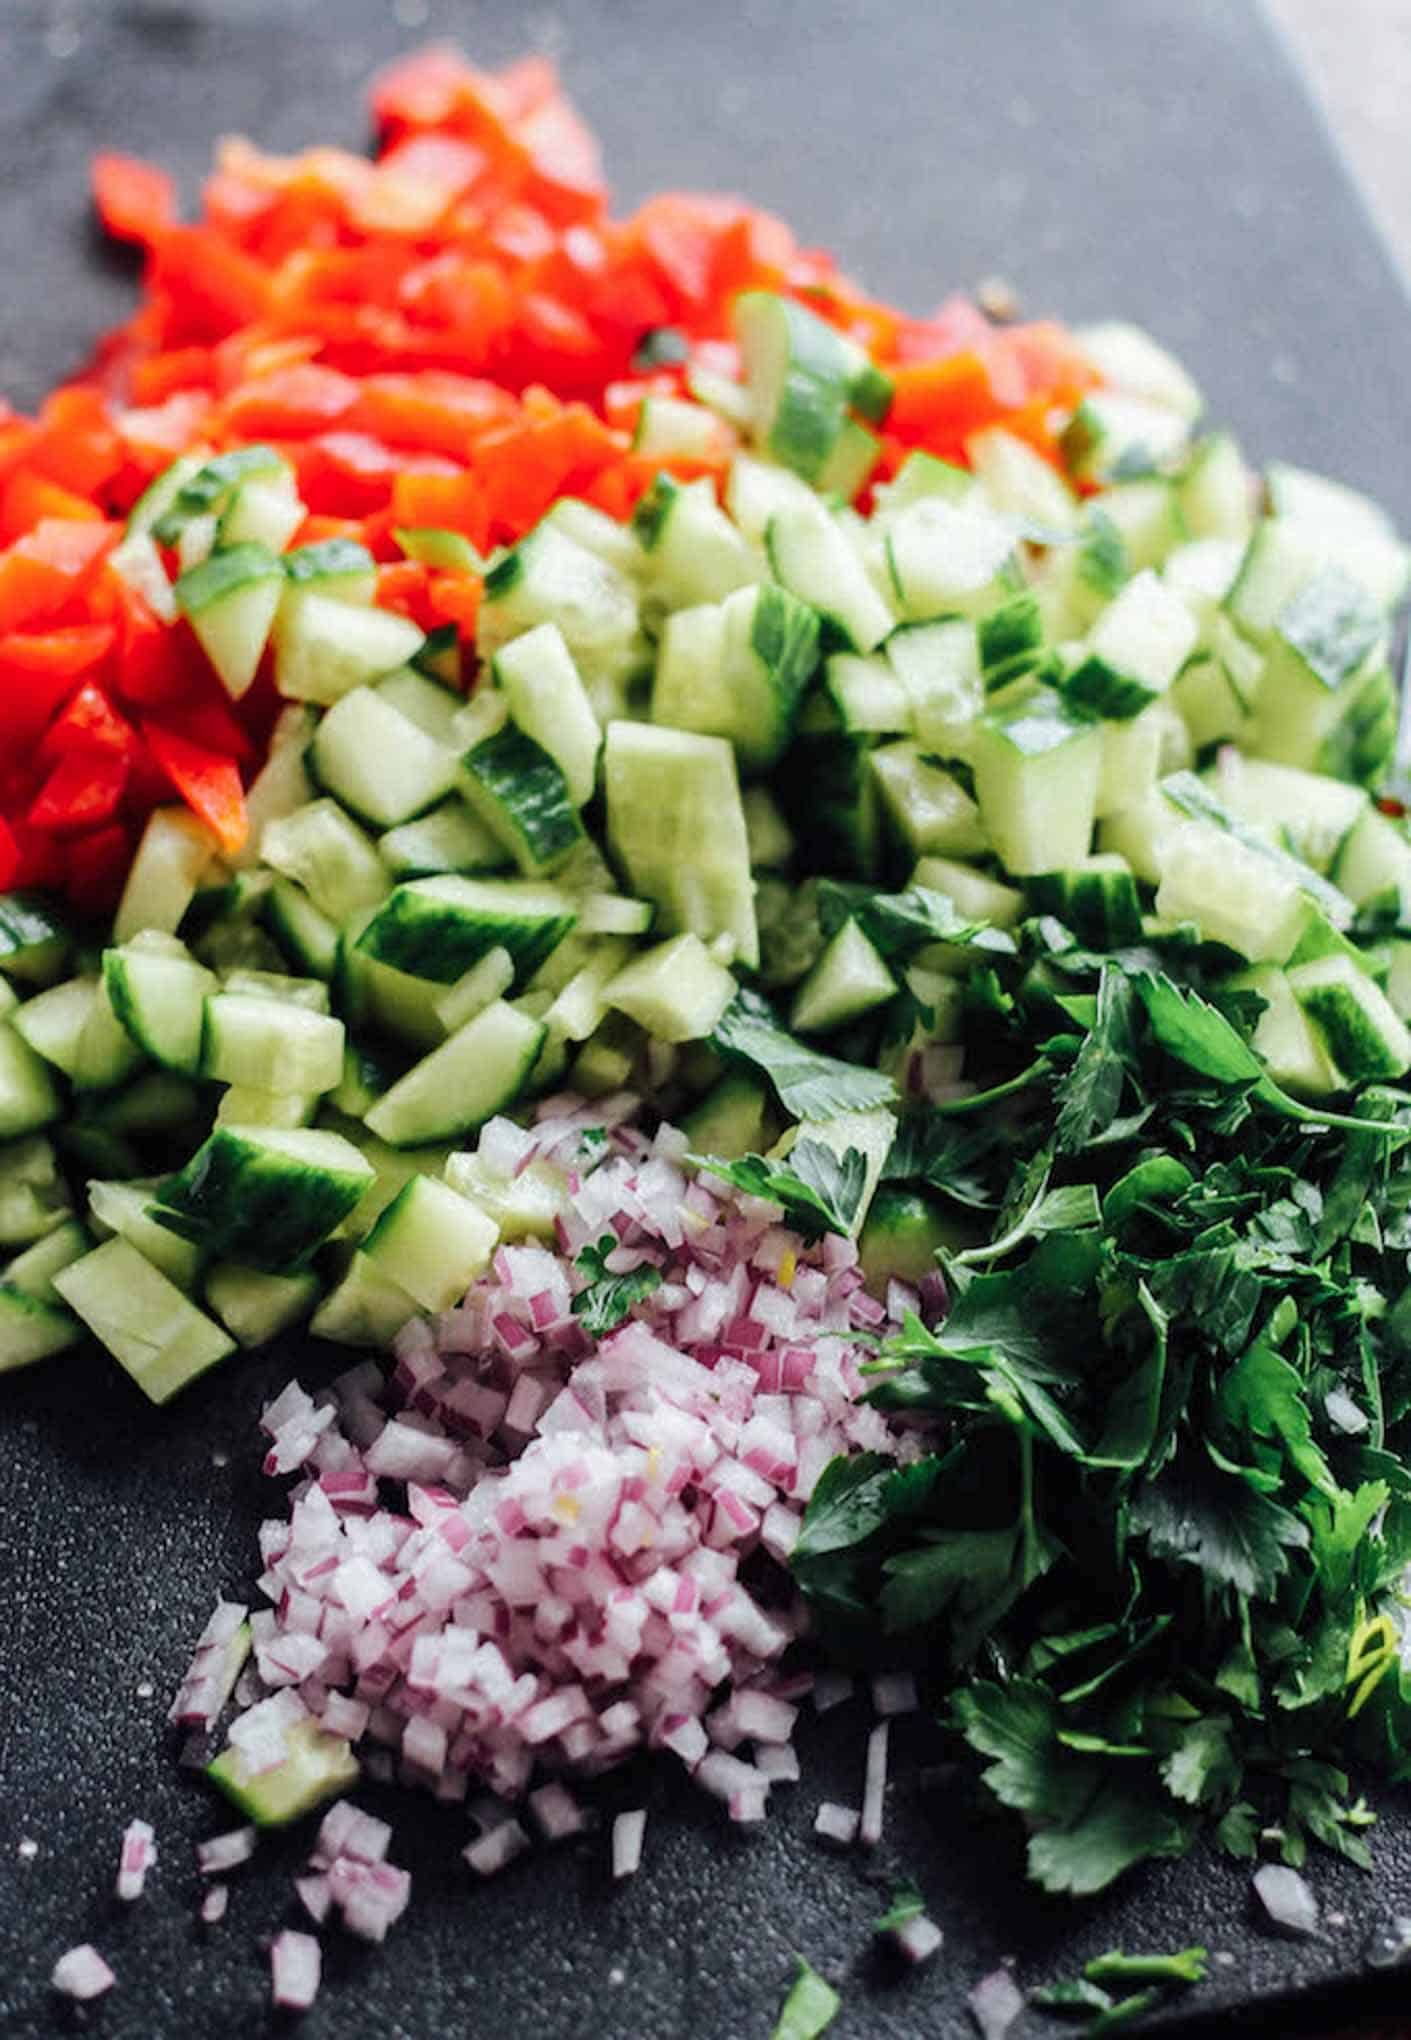 Chopped red bell pepper, cucumber, red onion, and parsley on a cutting board.